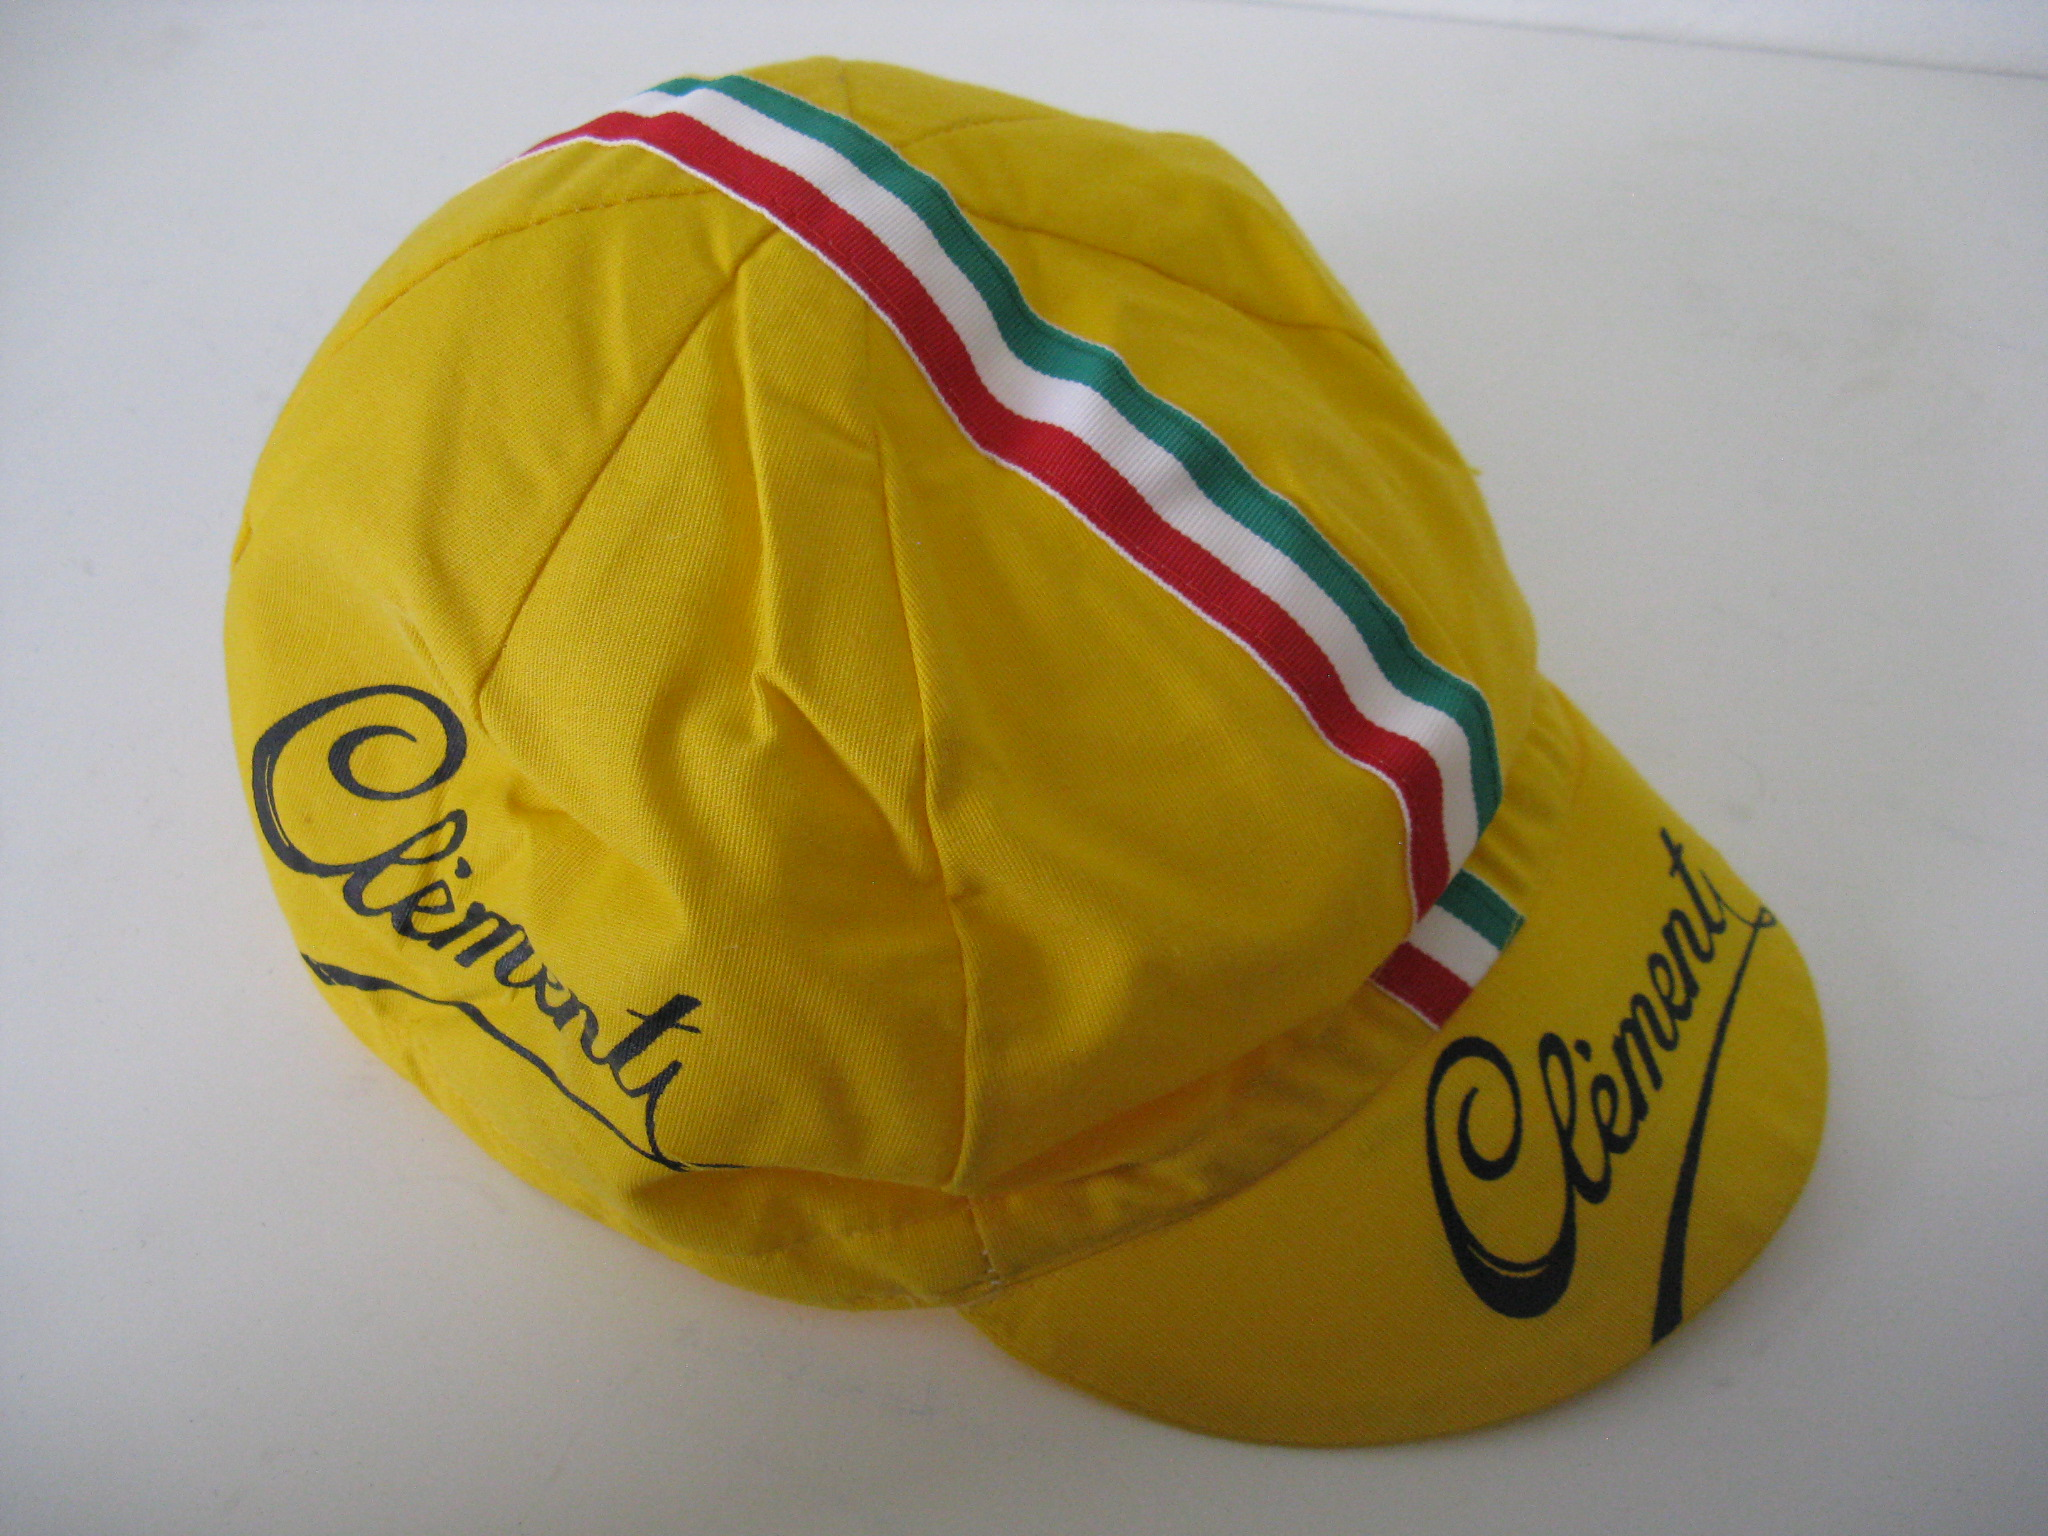 Clement Cycling Cap - made around 1980 Yellow - really nice - label has a  bonus! IN STOCK  9.  14.95. Qty  Italian Moa Vintage Cycling Shorts size ... 39ae72ad5